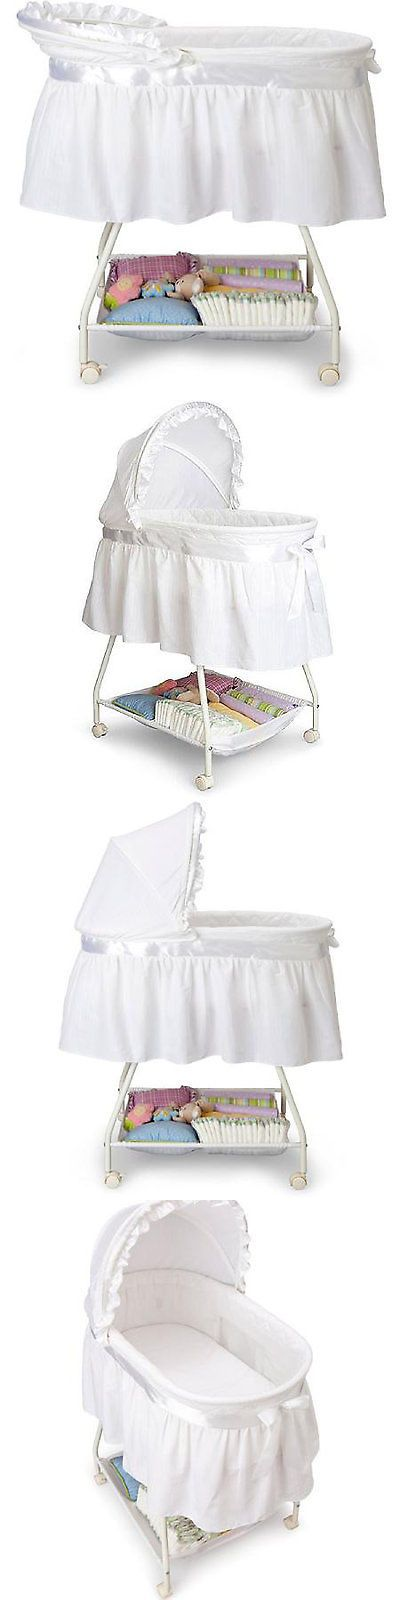 Baby Nursery: Portable Baby Bassinet Newborn Cradle White Moses Basket Infant Nursery BUY IT NOW ONLY: $47.33